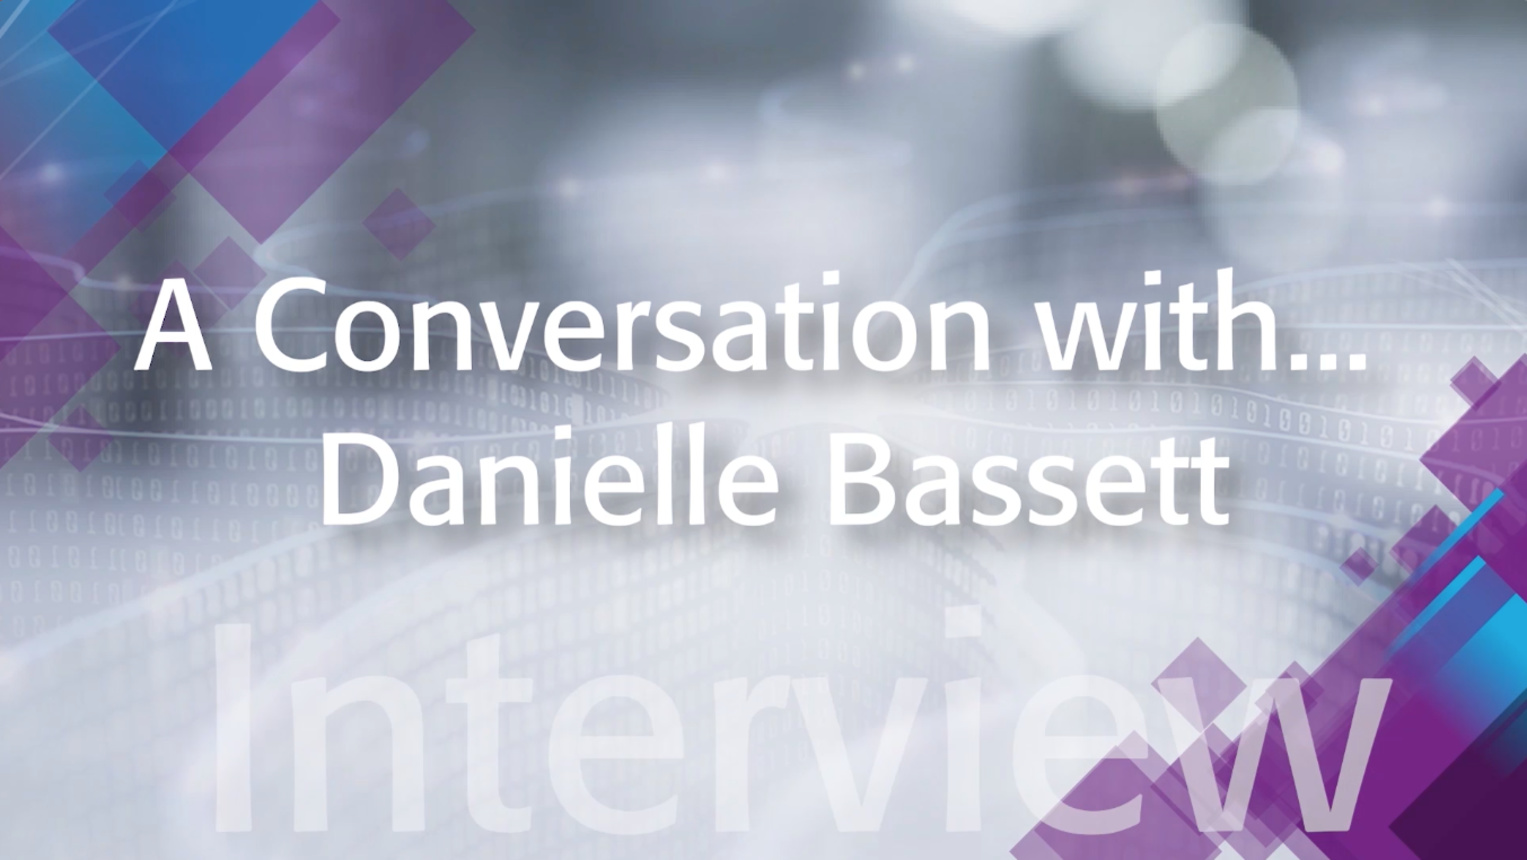 A Conversation with Danielle Bassett: IEEE TechEthics Interview